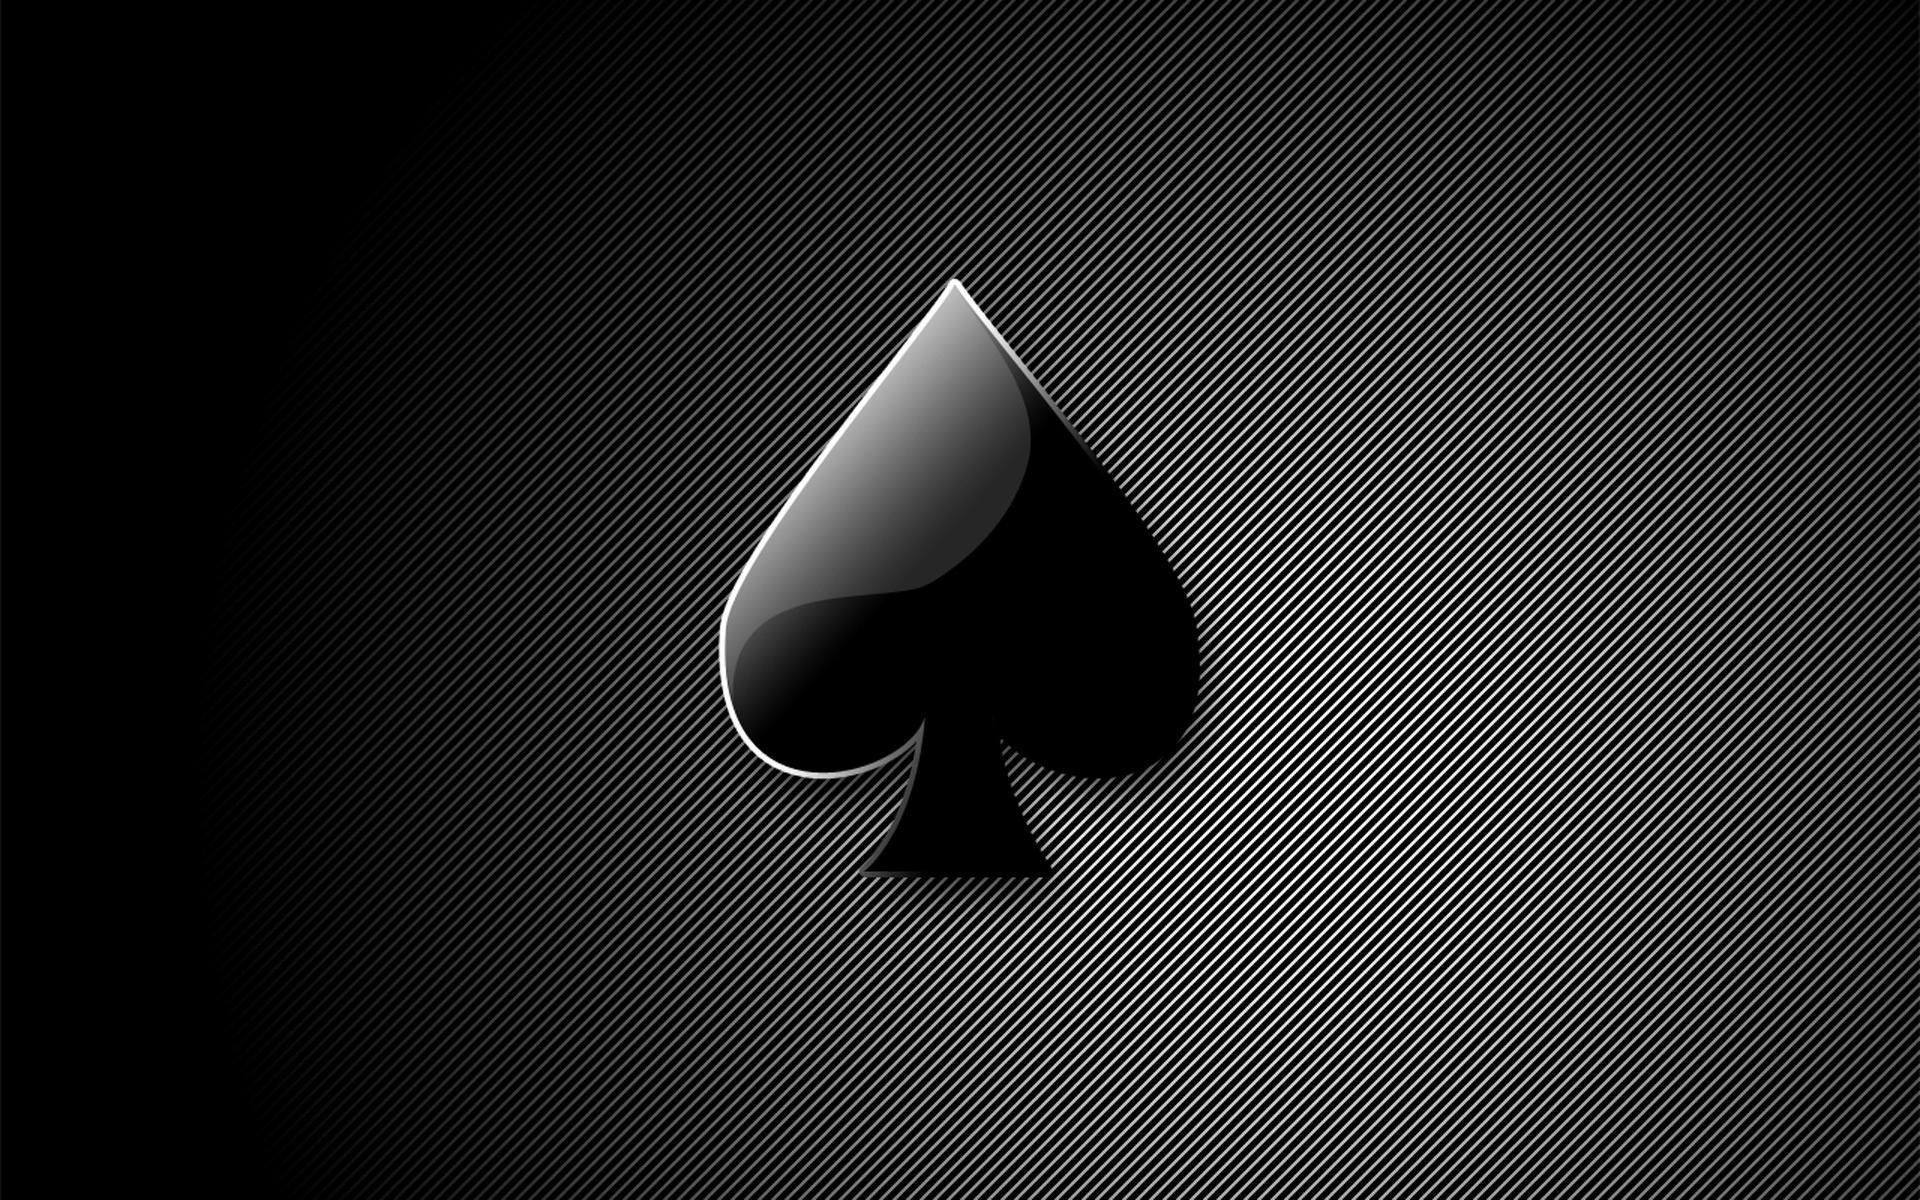 ace of spades wallpaper hd wallpapersafari. Black Bedroom Furniture Sets. Home Design Ideas